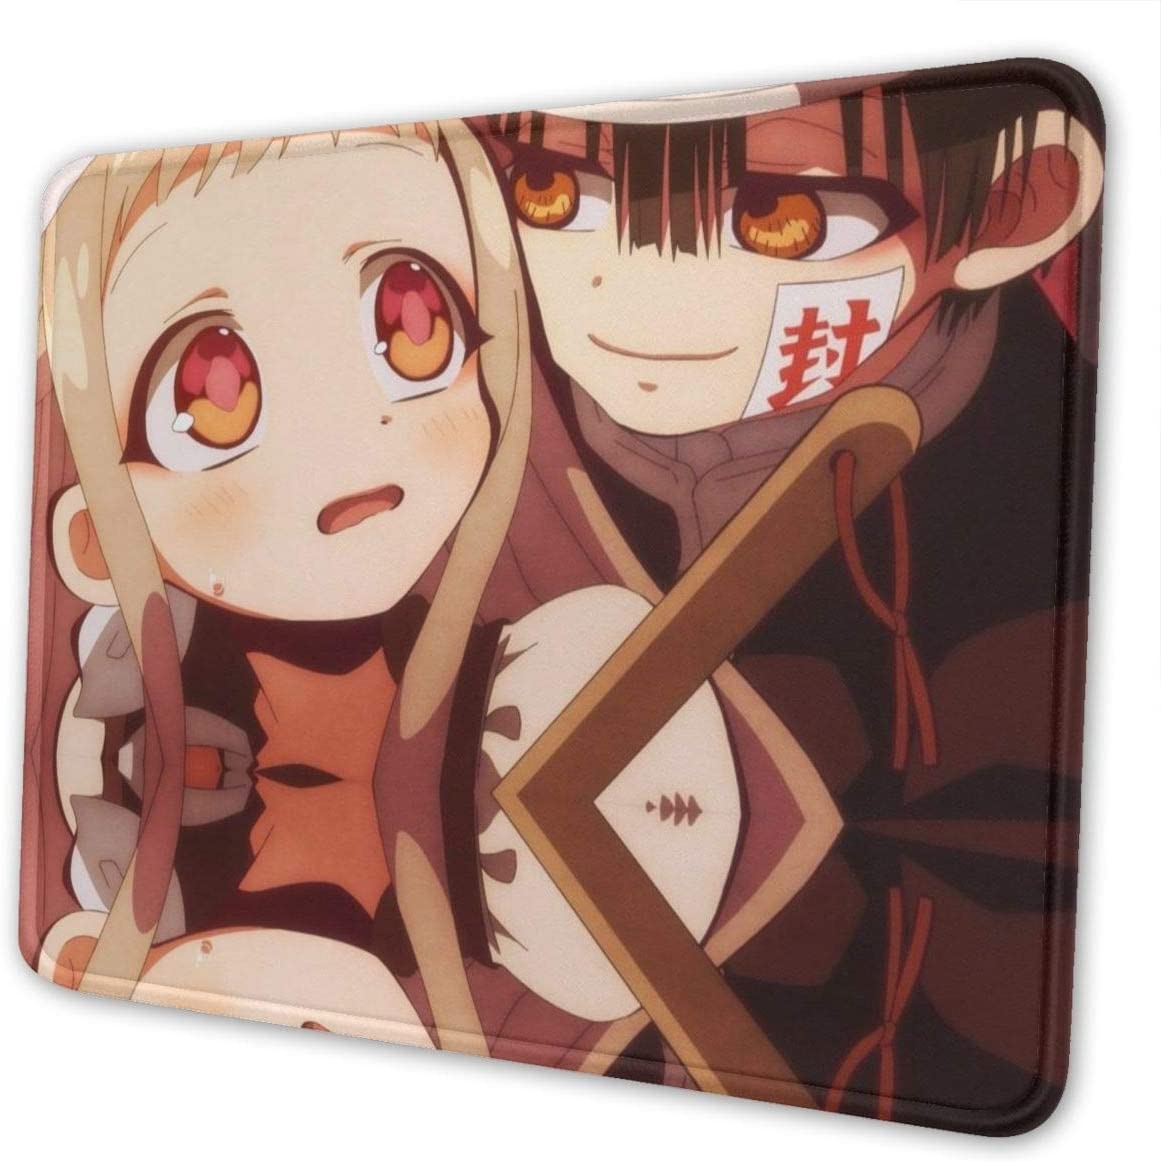 PAPAPI Toilet-Bound Ghim Của Yugi Tr/ên Hanako-kun Mouse Pad Rubber Non-Slip Rectangle for Computers 8.3 X 10.3 in